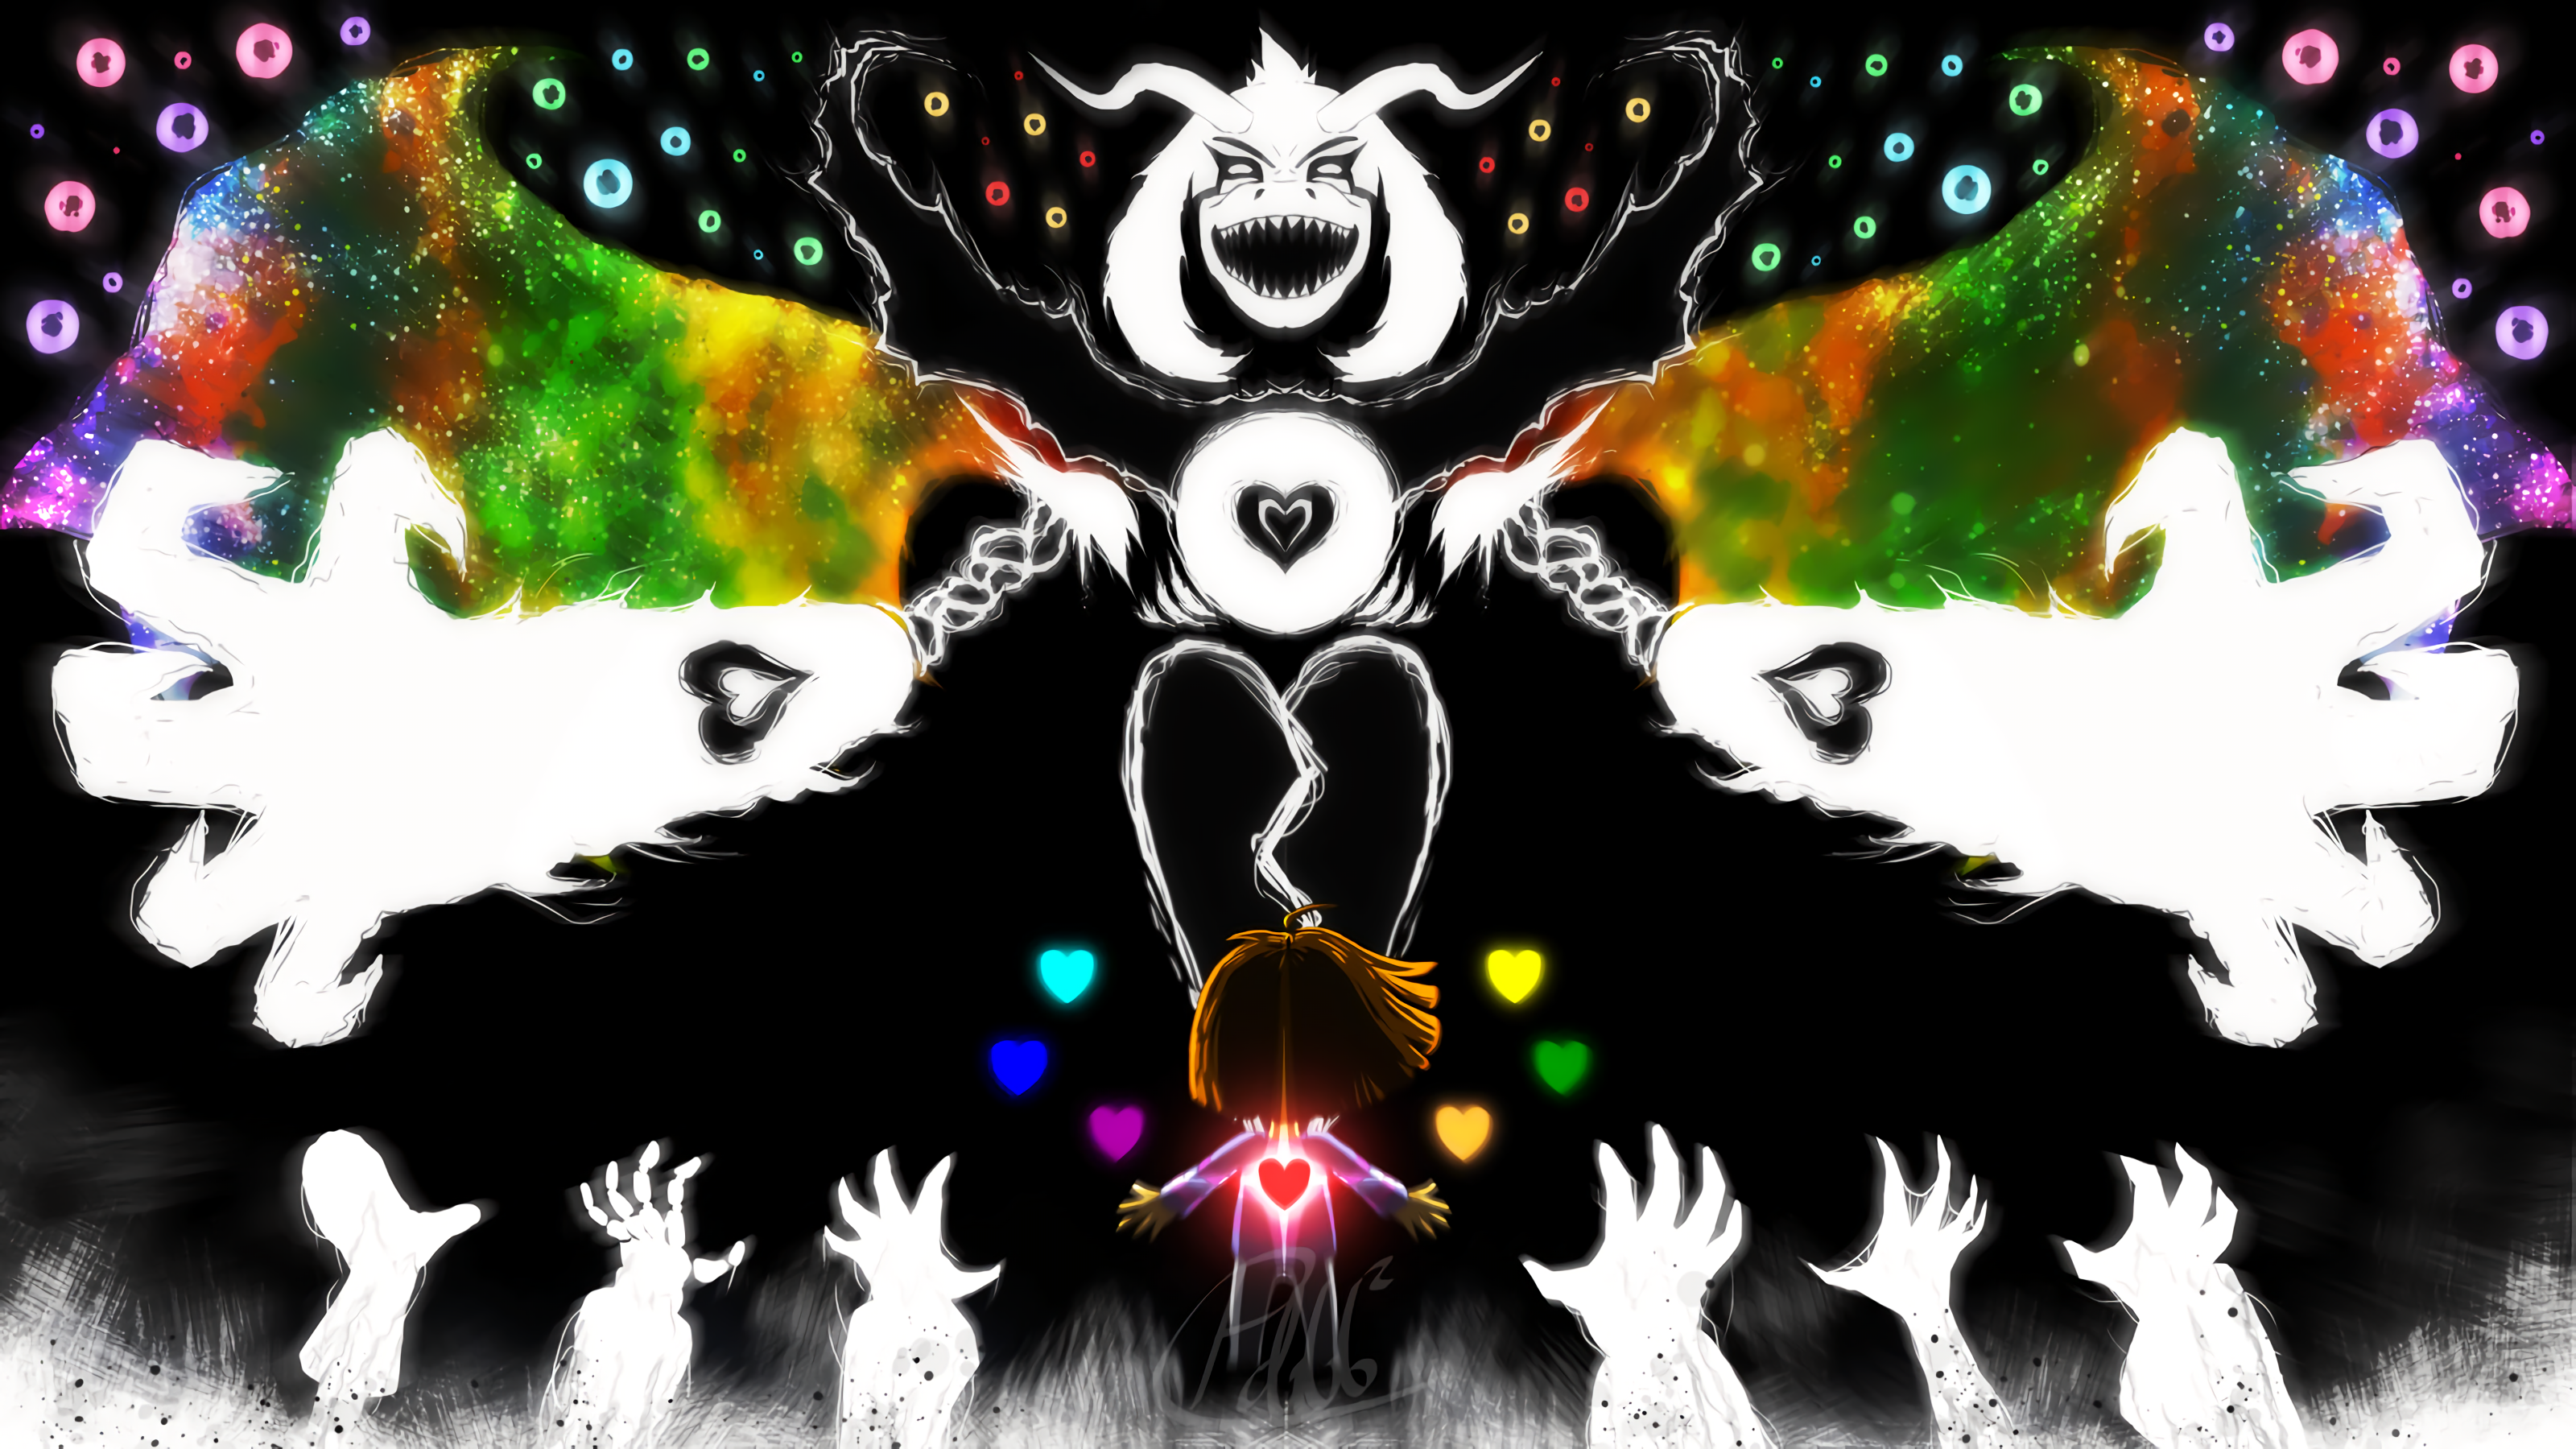 undertale images Asriel Dreemurr Boss Fight HD wallpaper and background photos